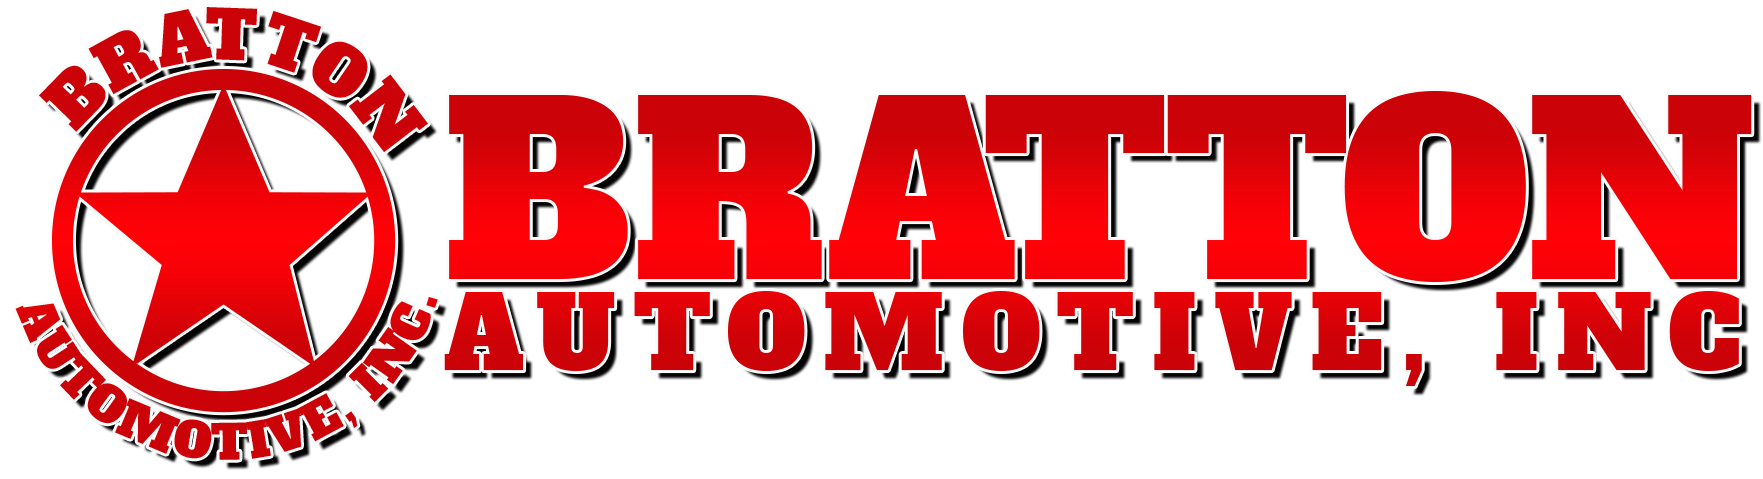 Bratton Automotive Inc